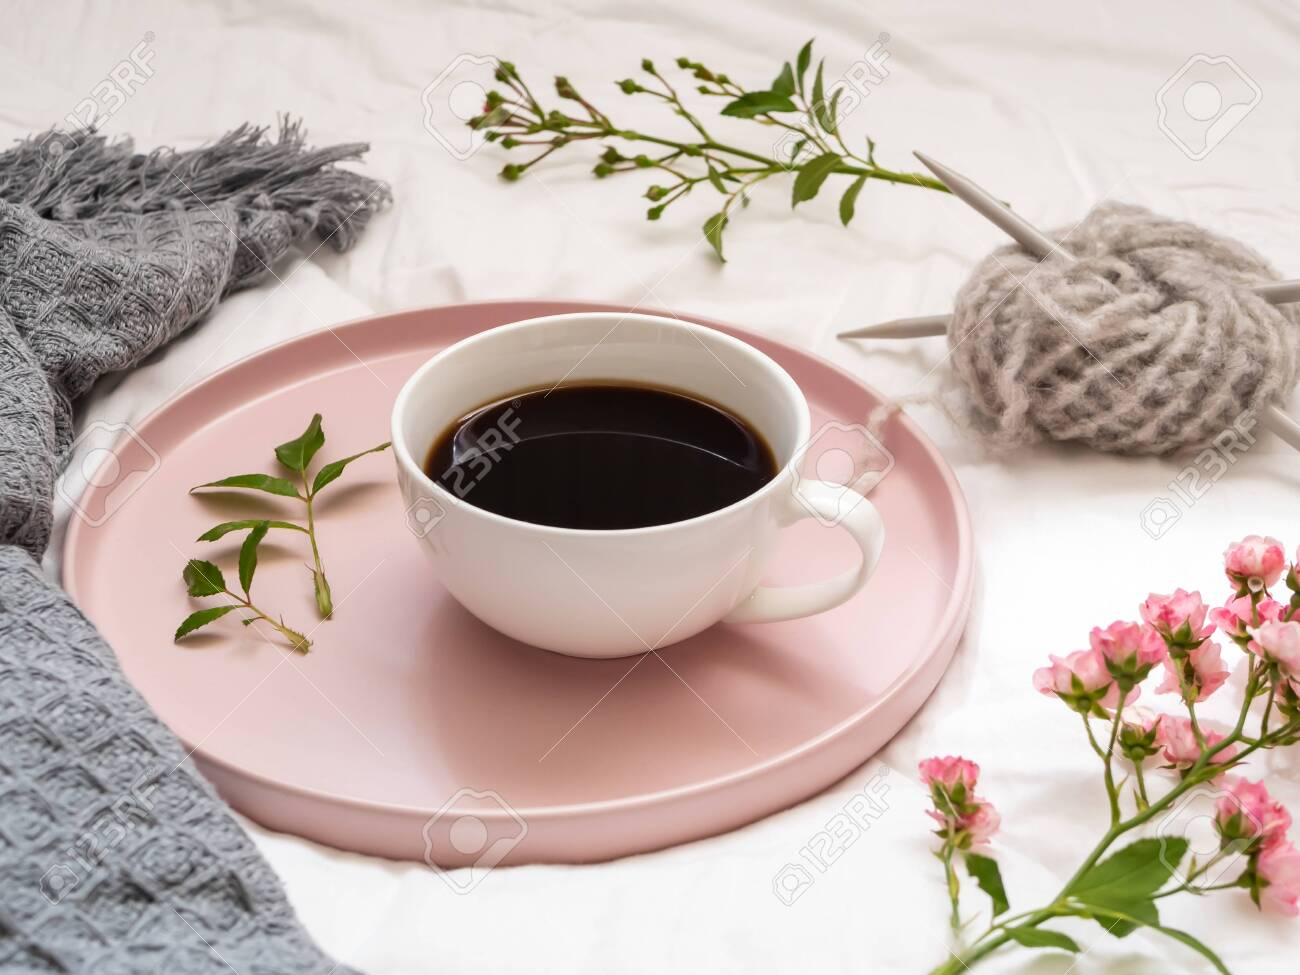 Coffee On A Serving Tray On A Bed Stock Photo Picture And Royalty Free Image Image 135305693